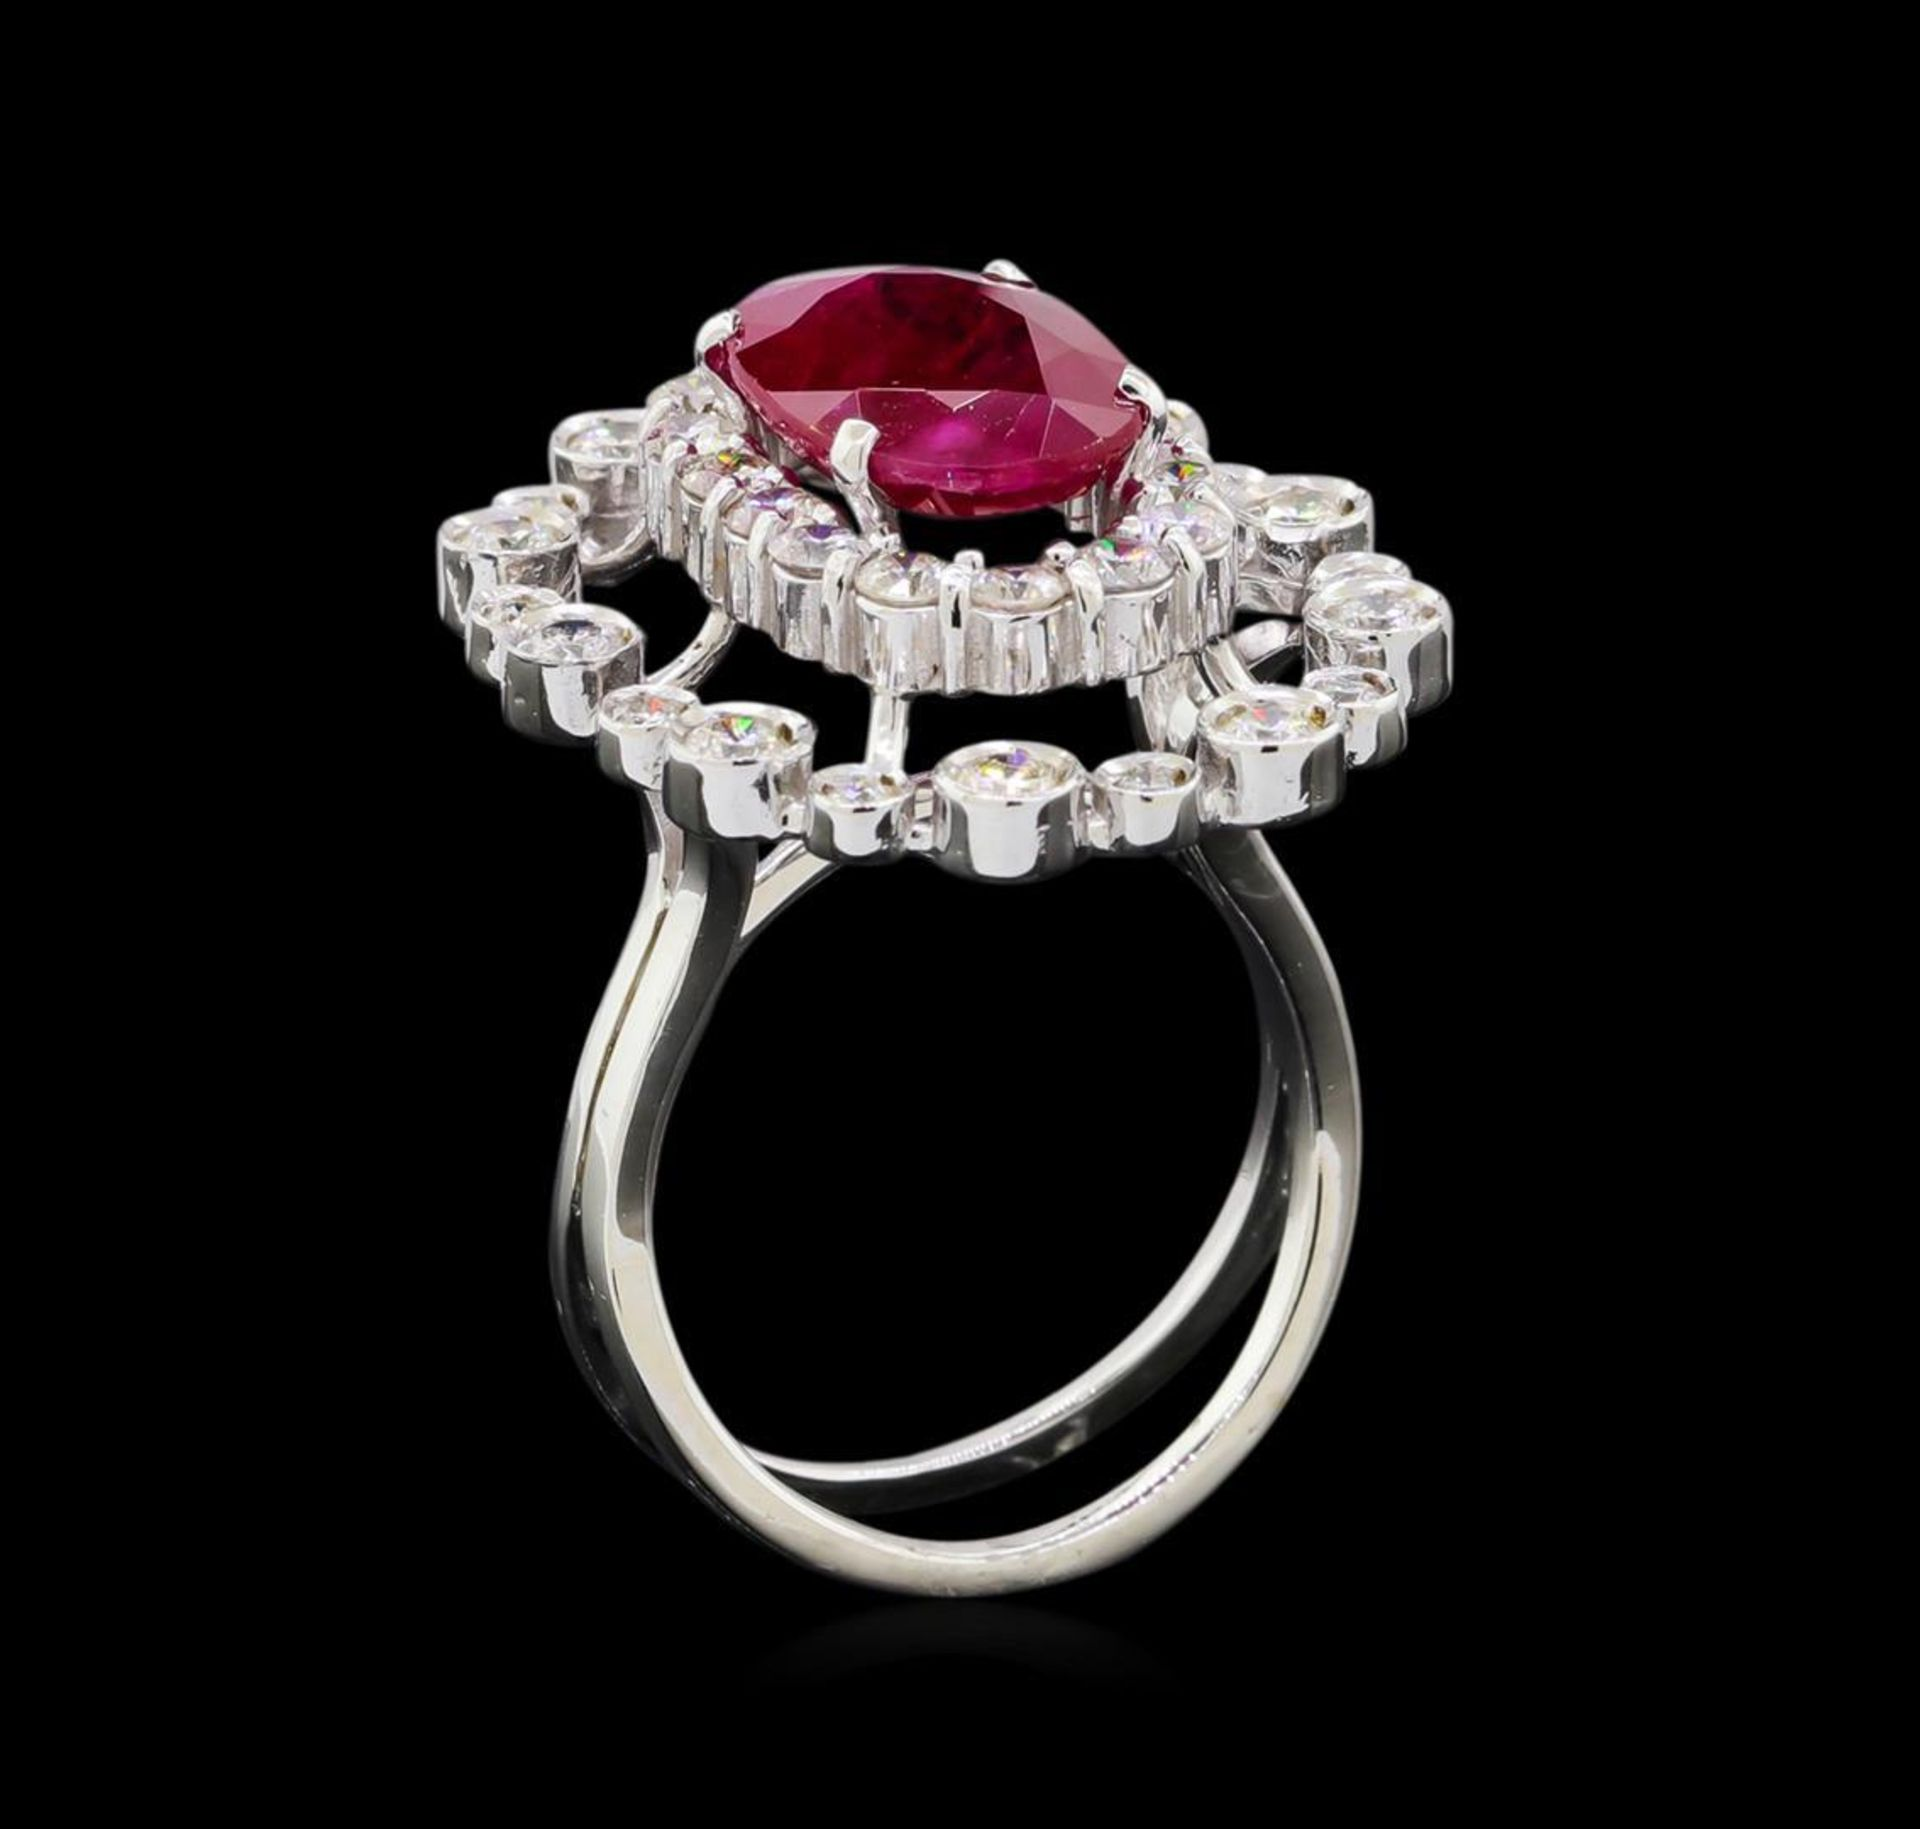 GIA Cert 4.22 ctw Ruby and Diamond Ring - 14KT White Gold - Image 4 of 6